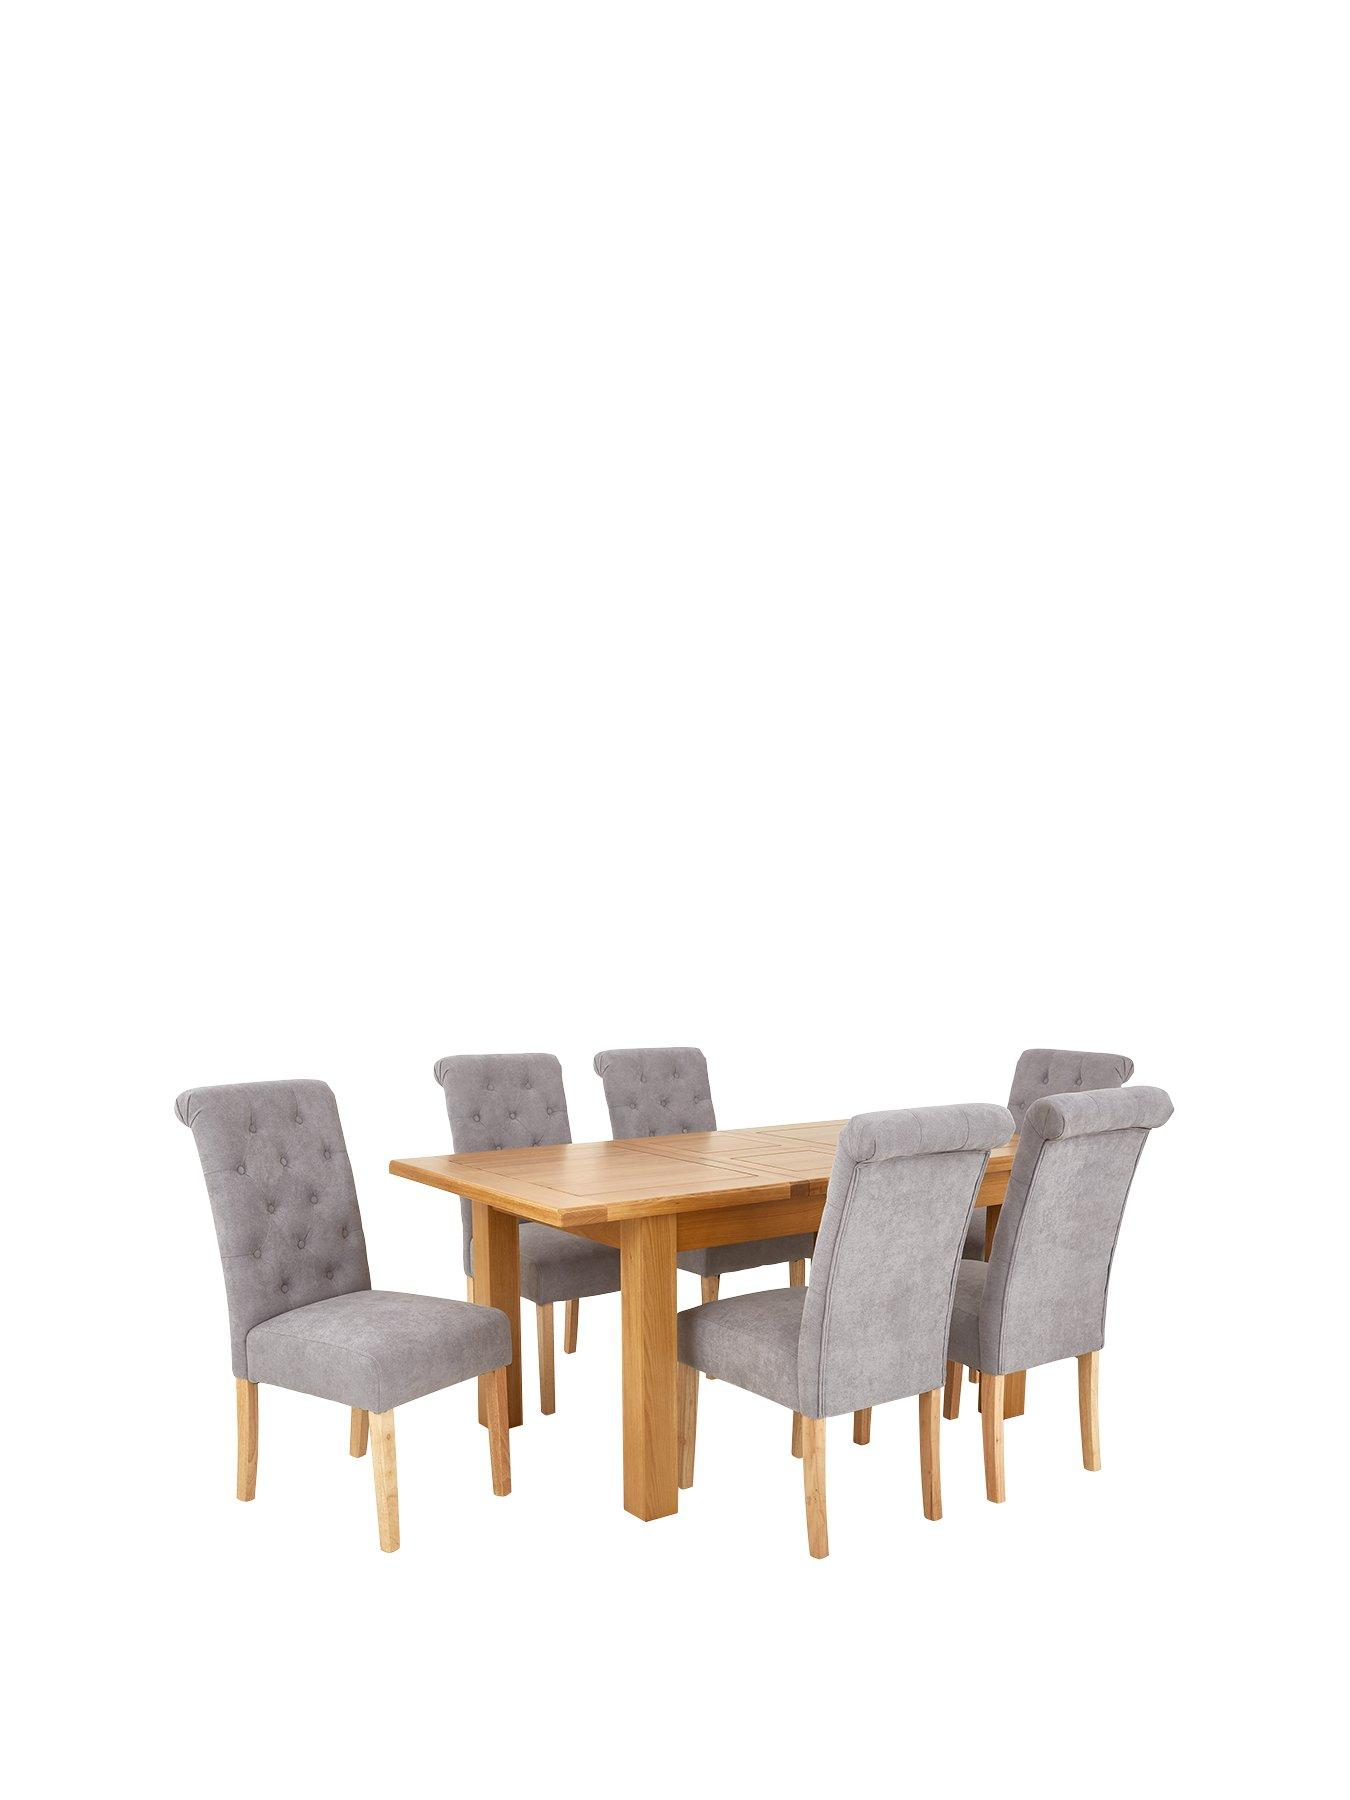 lidl fishing chair navy blue metal dining chairs table sets tables 6 very co uk oakland 140 180 cm solid wood extending fabric scroll back